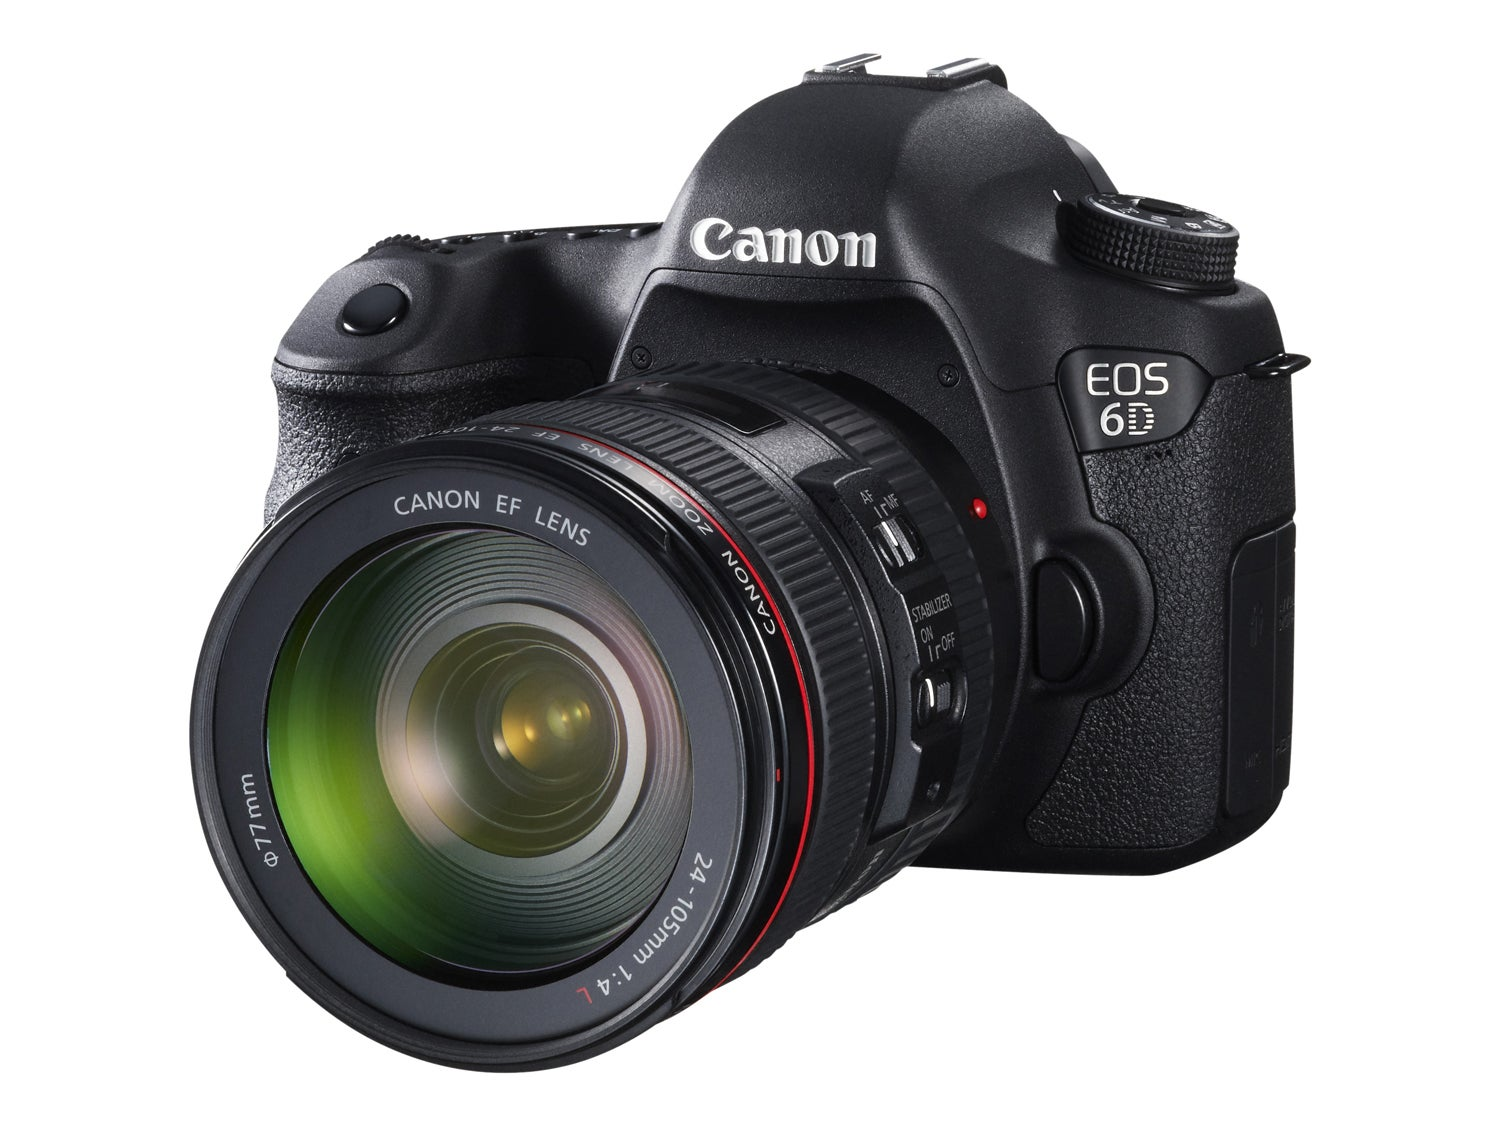 Camera Recommended Dslr Camera For Beginners best full frame dslrs 2016 what digital camera canon eos 6d